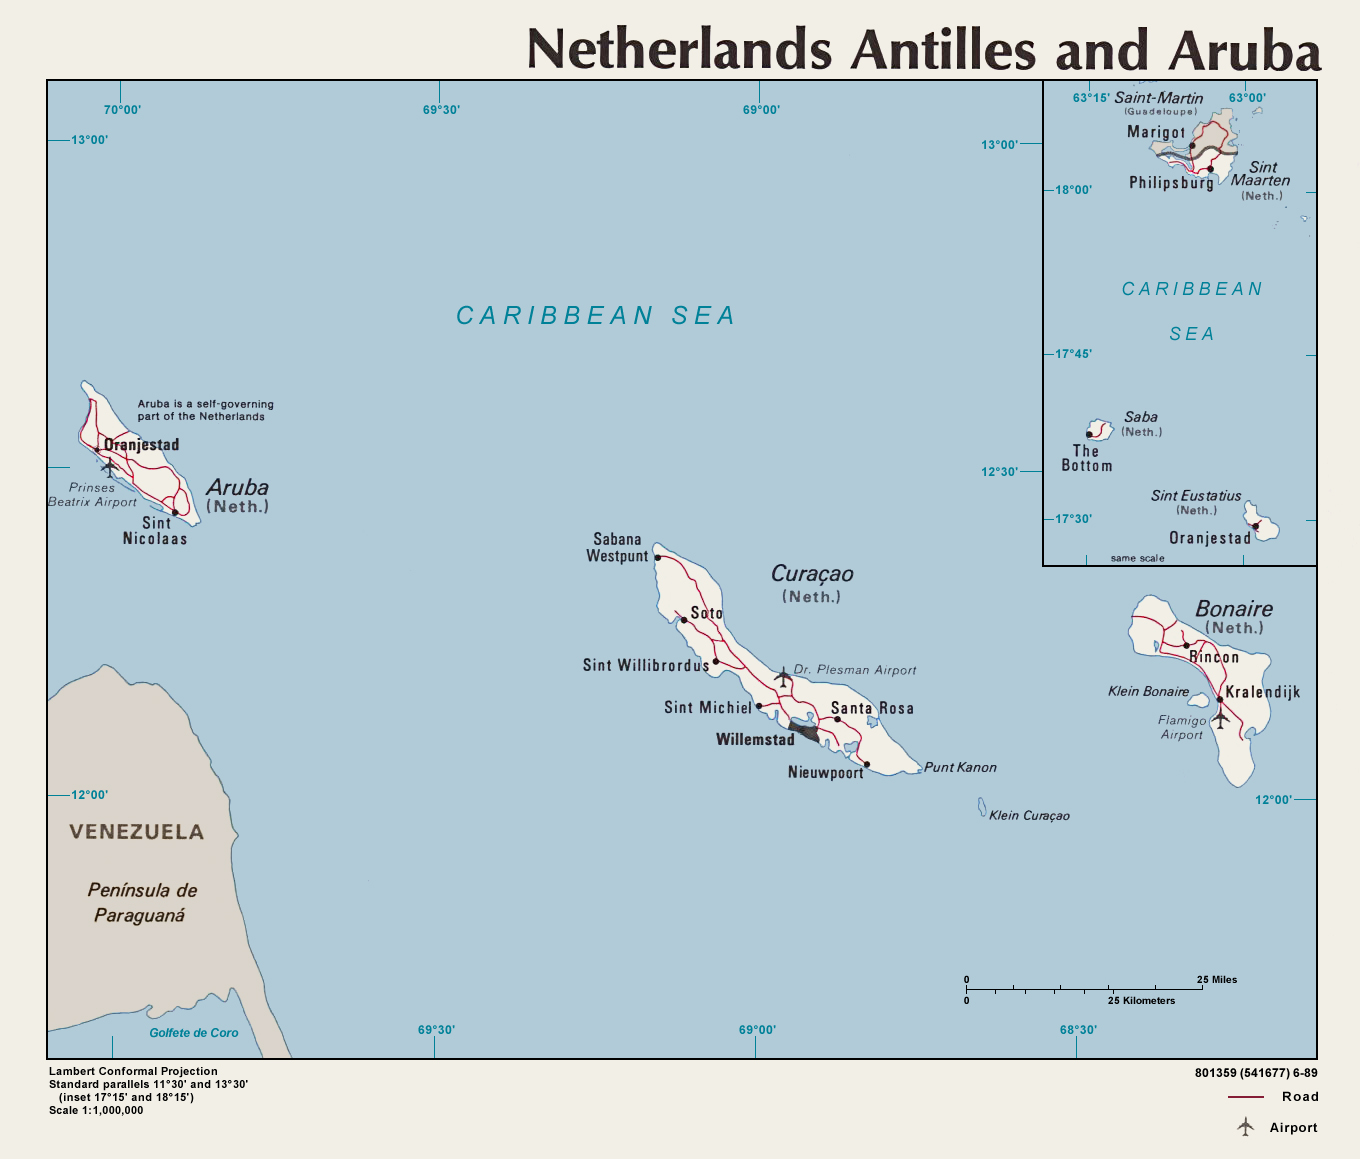 Map Of Netherlands Antilles And Aruba Mapsofnet - Map of netherlands antilles world